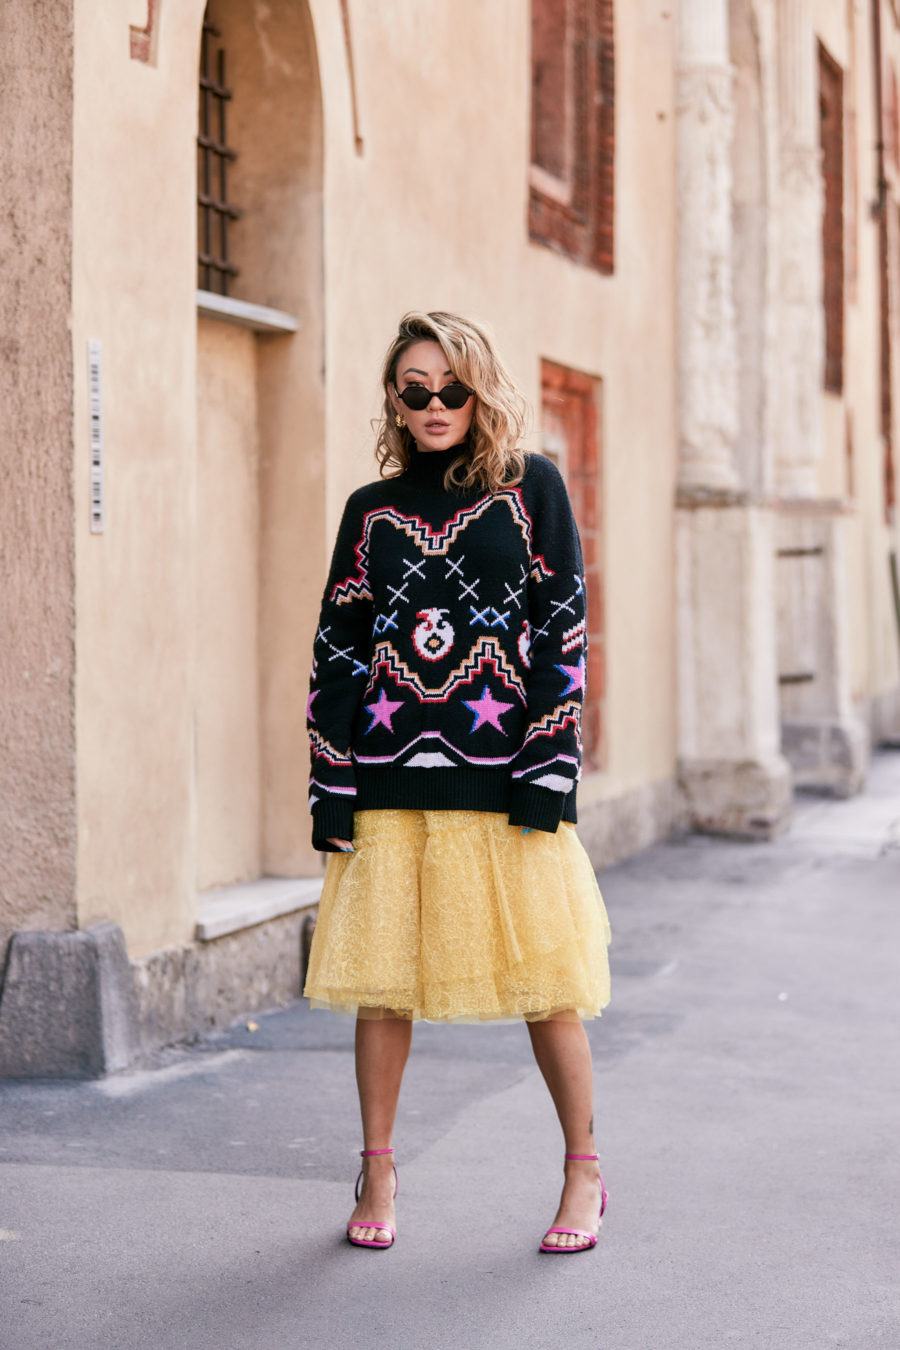 fashion blogger jessica wang shares thanksgiving day outfit ideas and wears a tulle skirt with a large graphic sweater // Notjessfashion.com